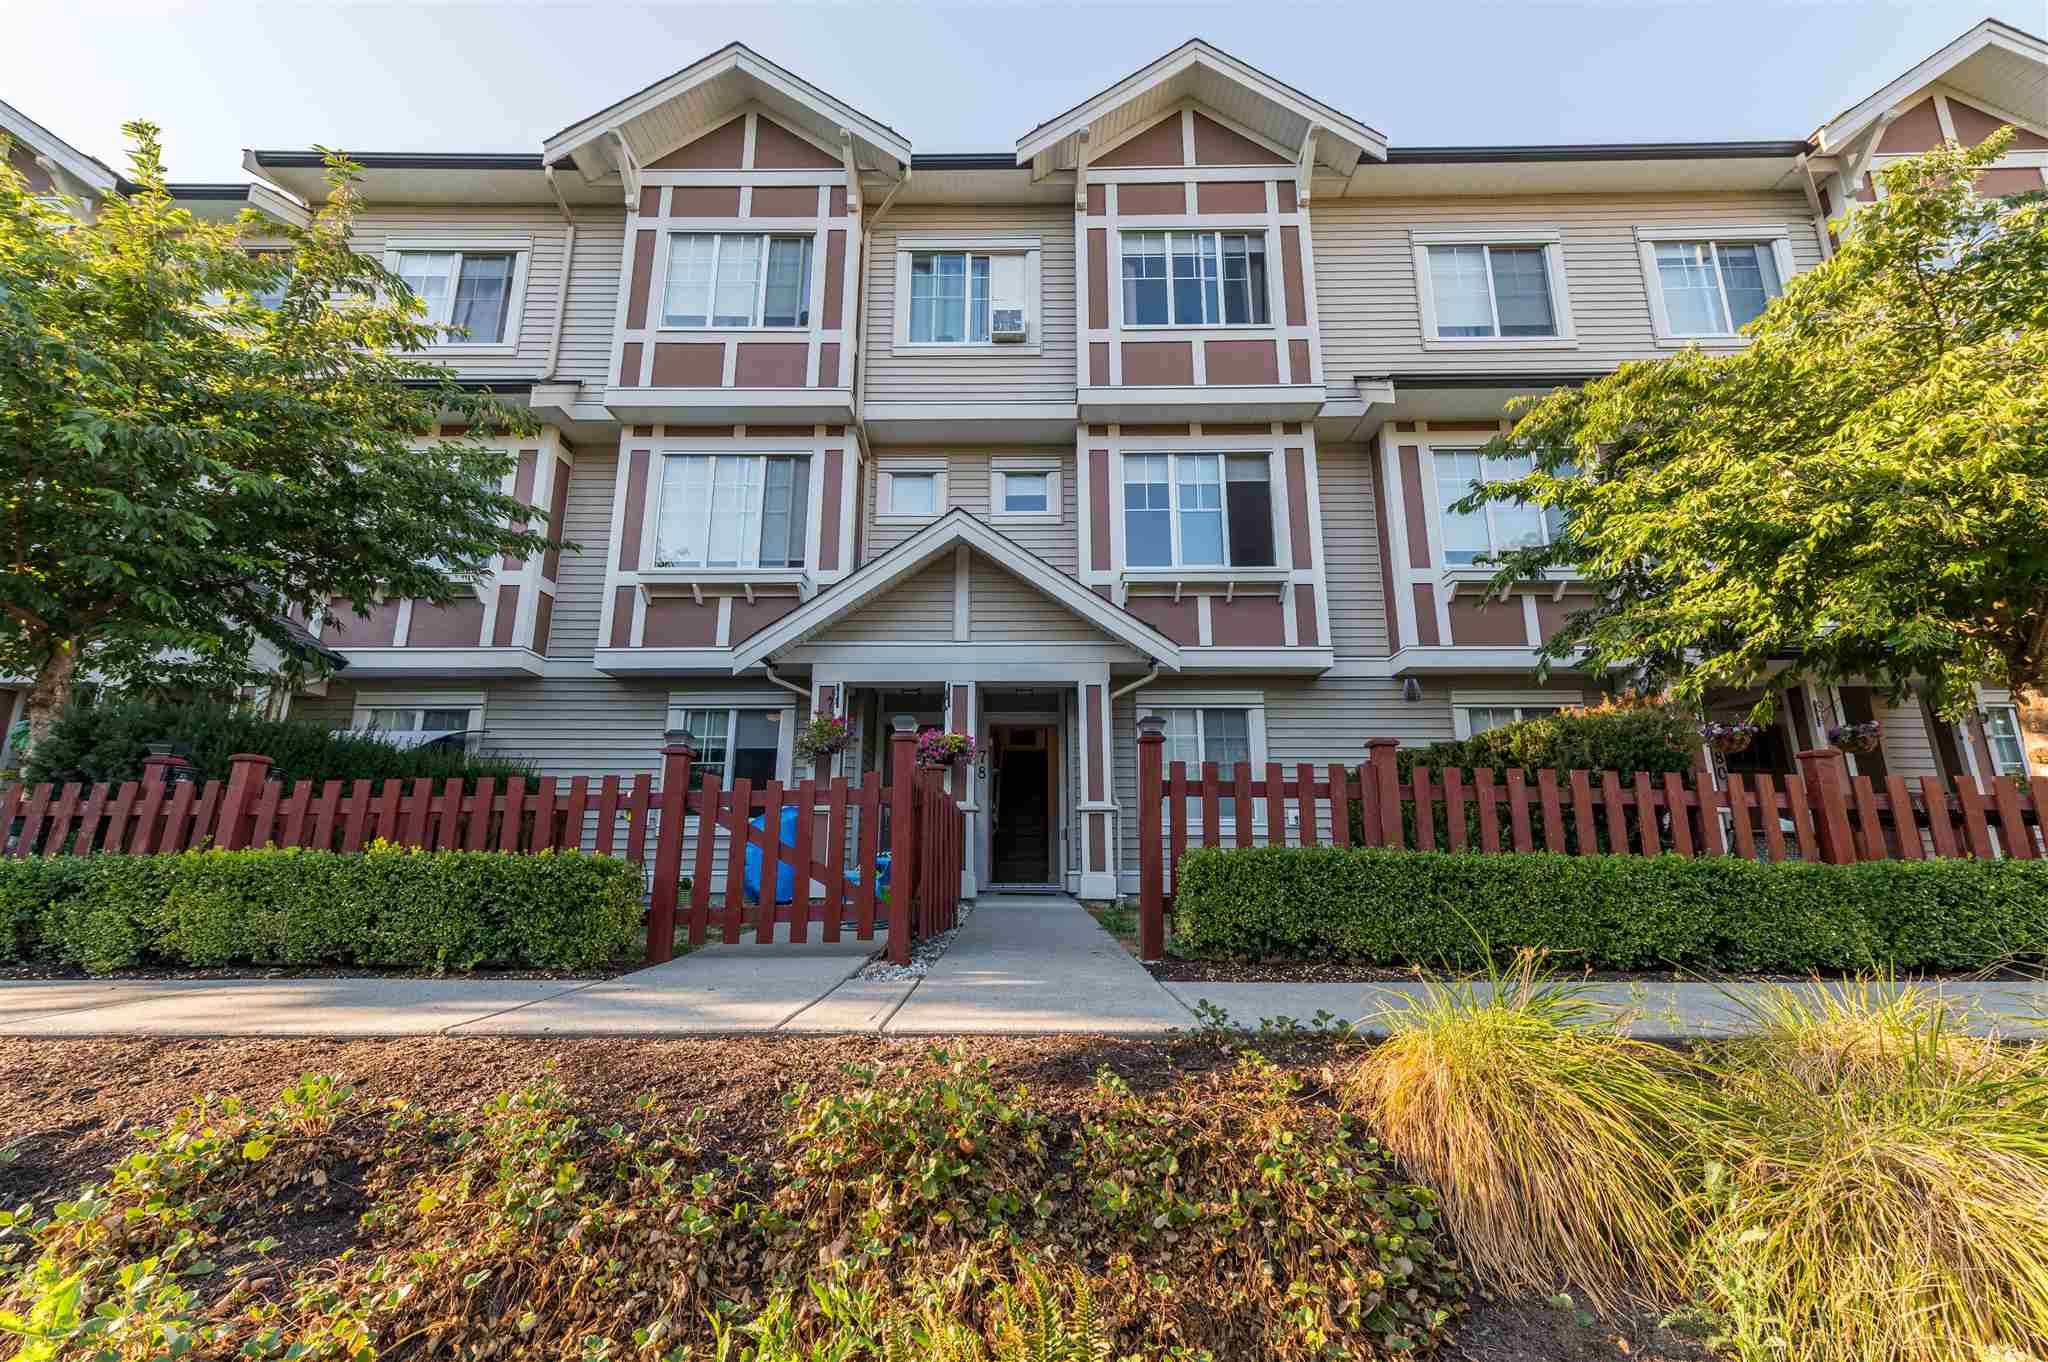 Main Photo: 78 10151 240 STREET in Maple Ridge: Albion Townhouse for sale : MLS®# R2607685